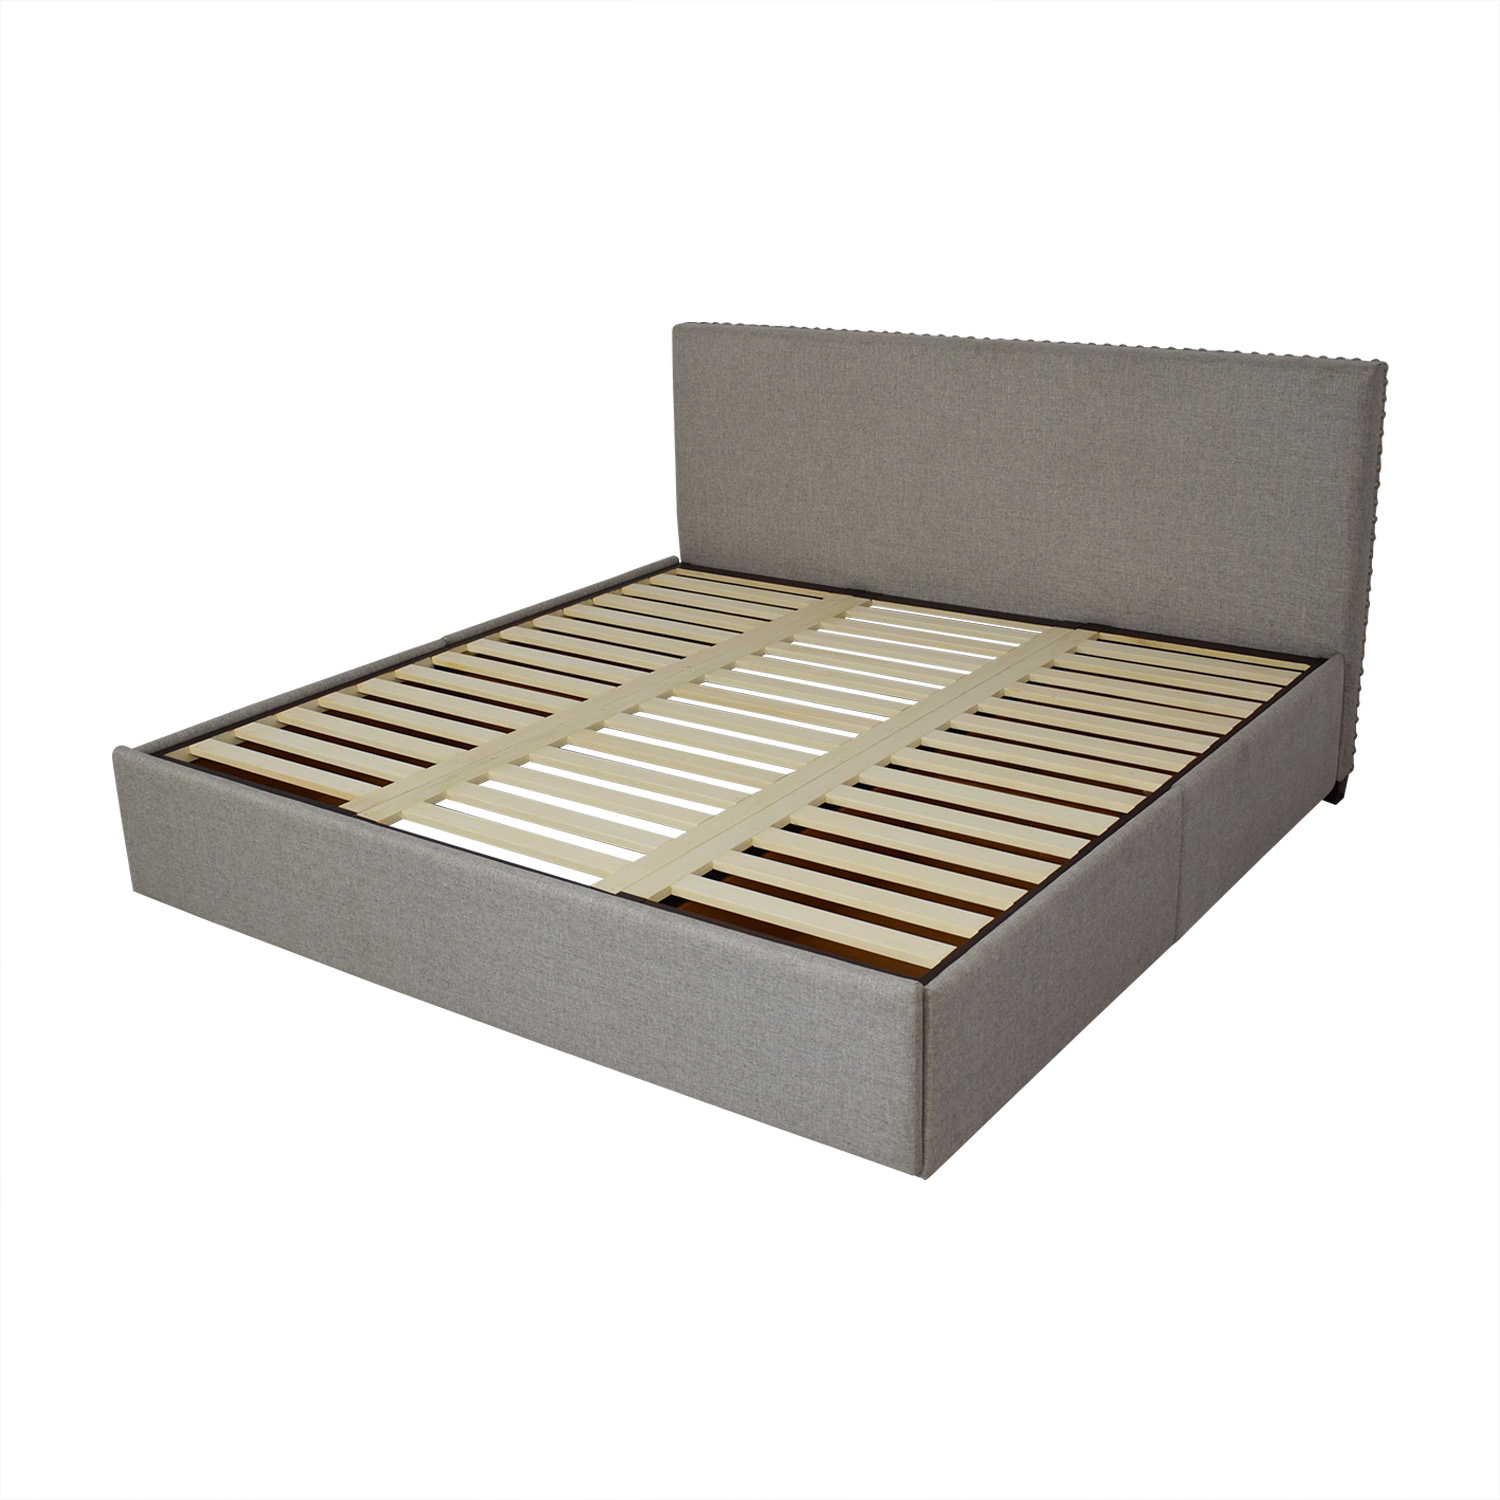 Pottery Barn Pottery Barn Raleigh King Storage Bed nyc